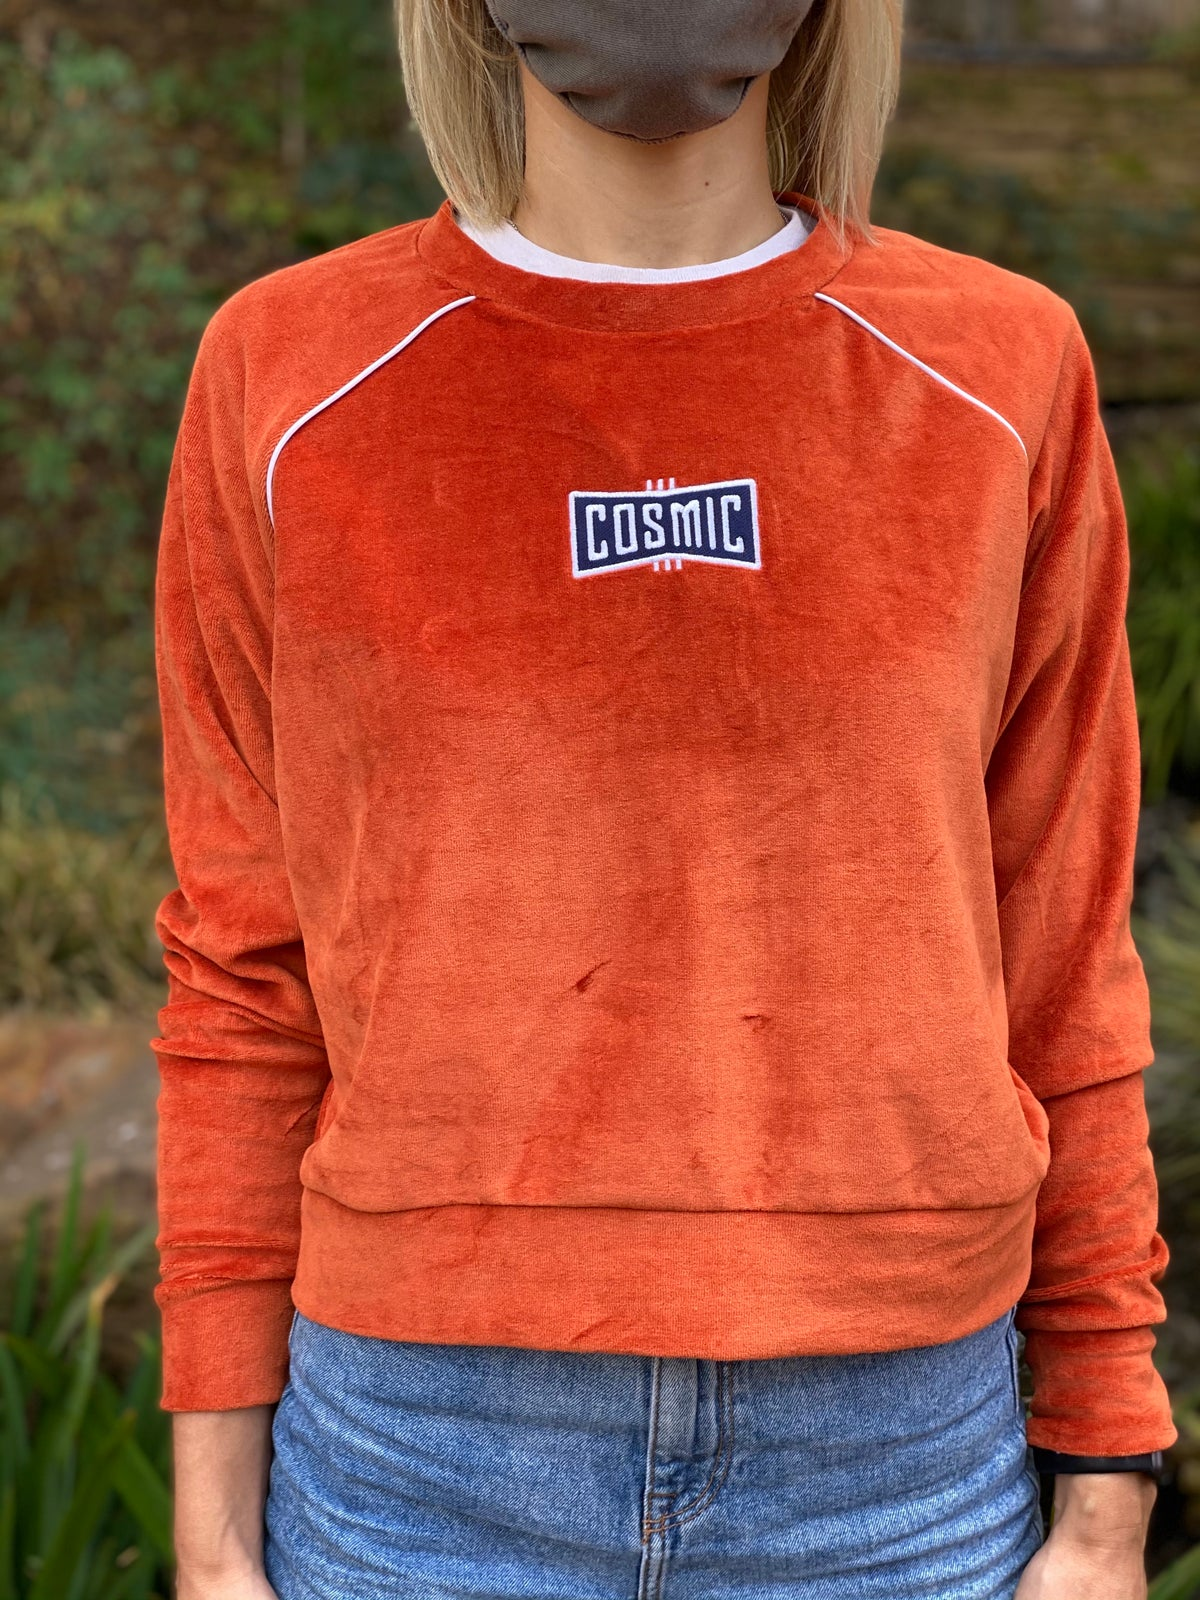 Cosmic Velour Sweatshirt - Orange